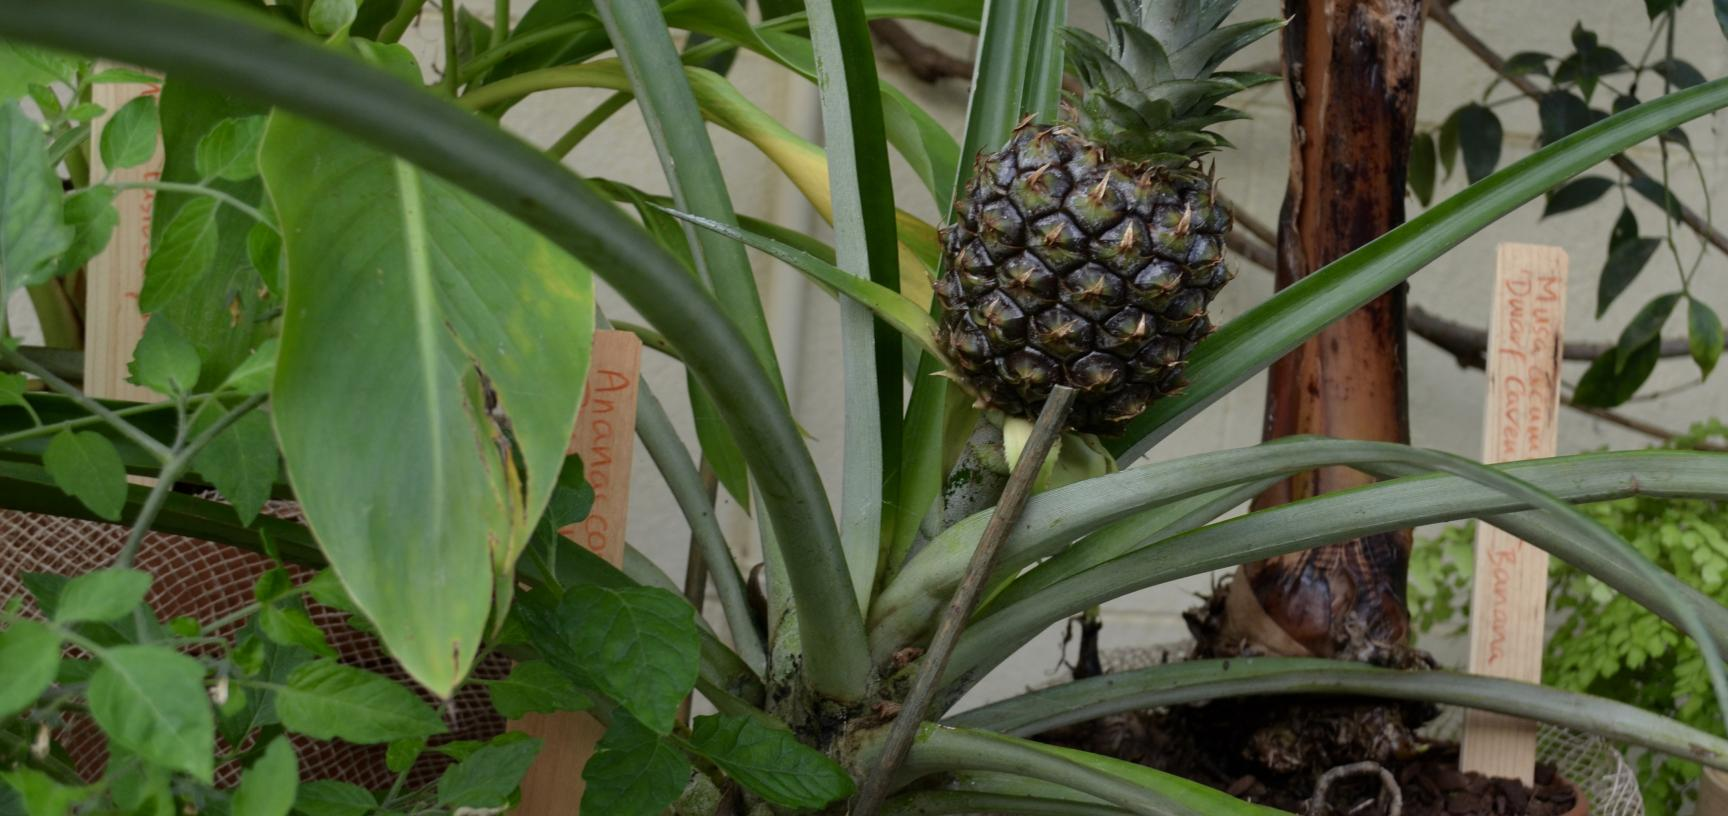 Pineapple in the Conservatory